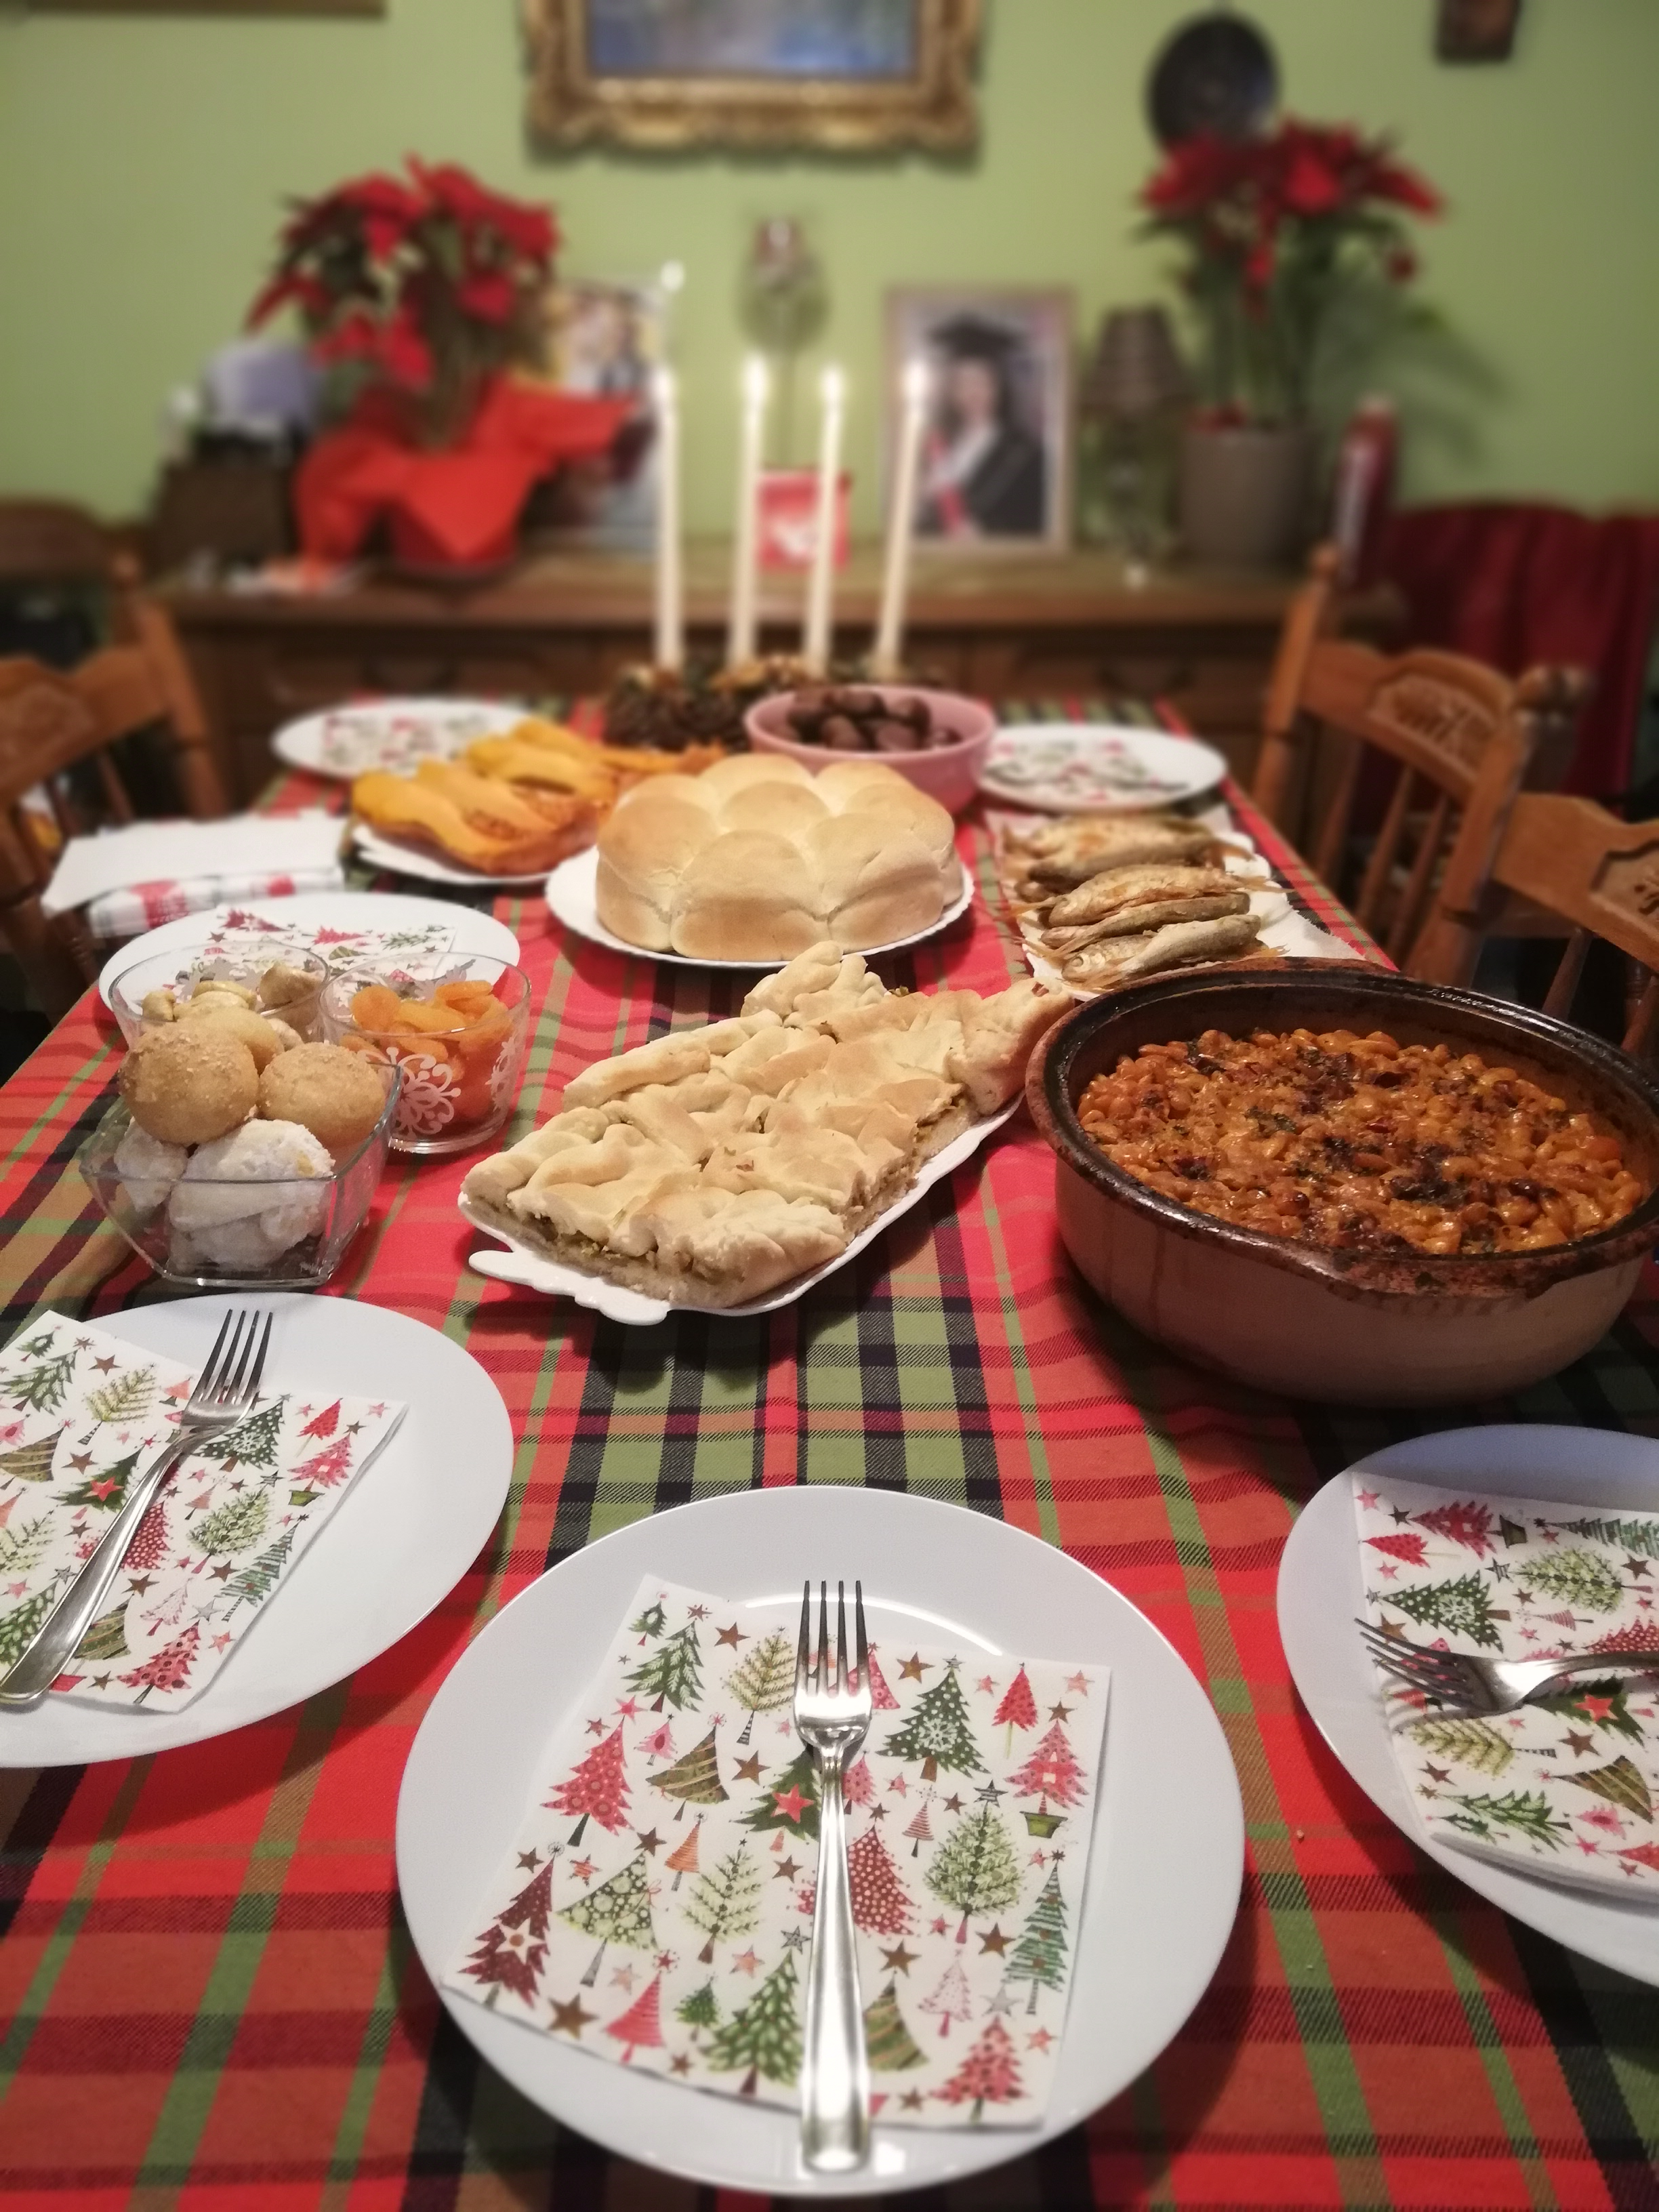 How do I manage my diabetes during Christmas?